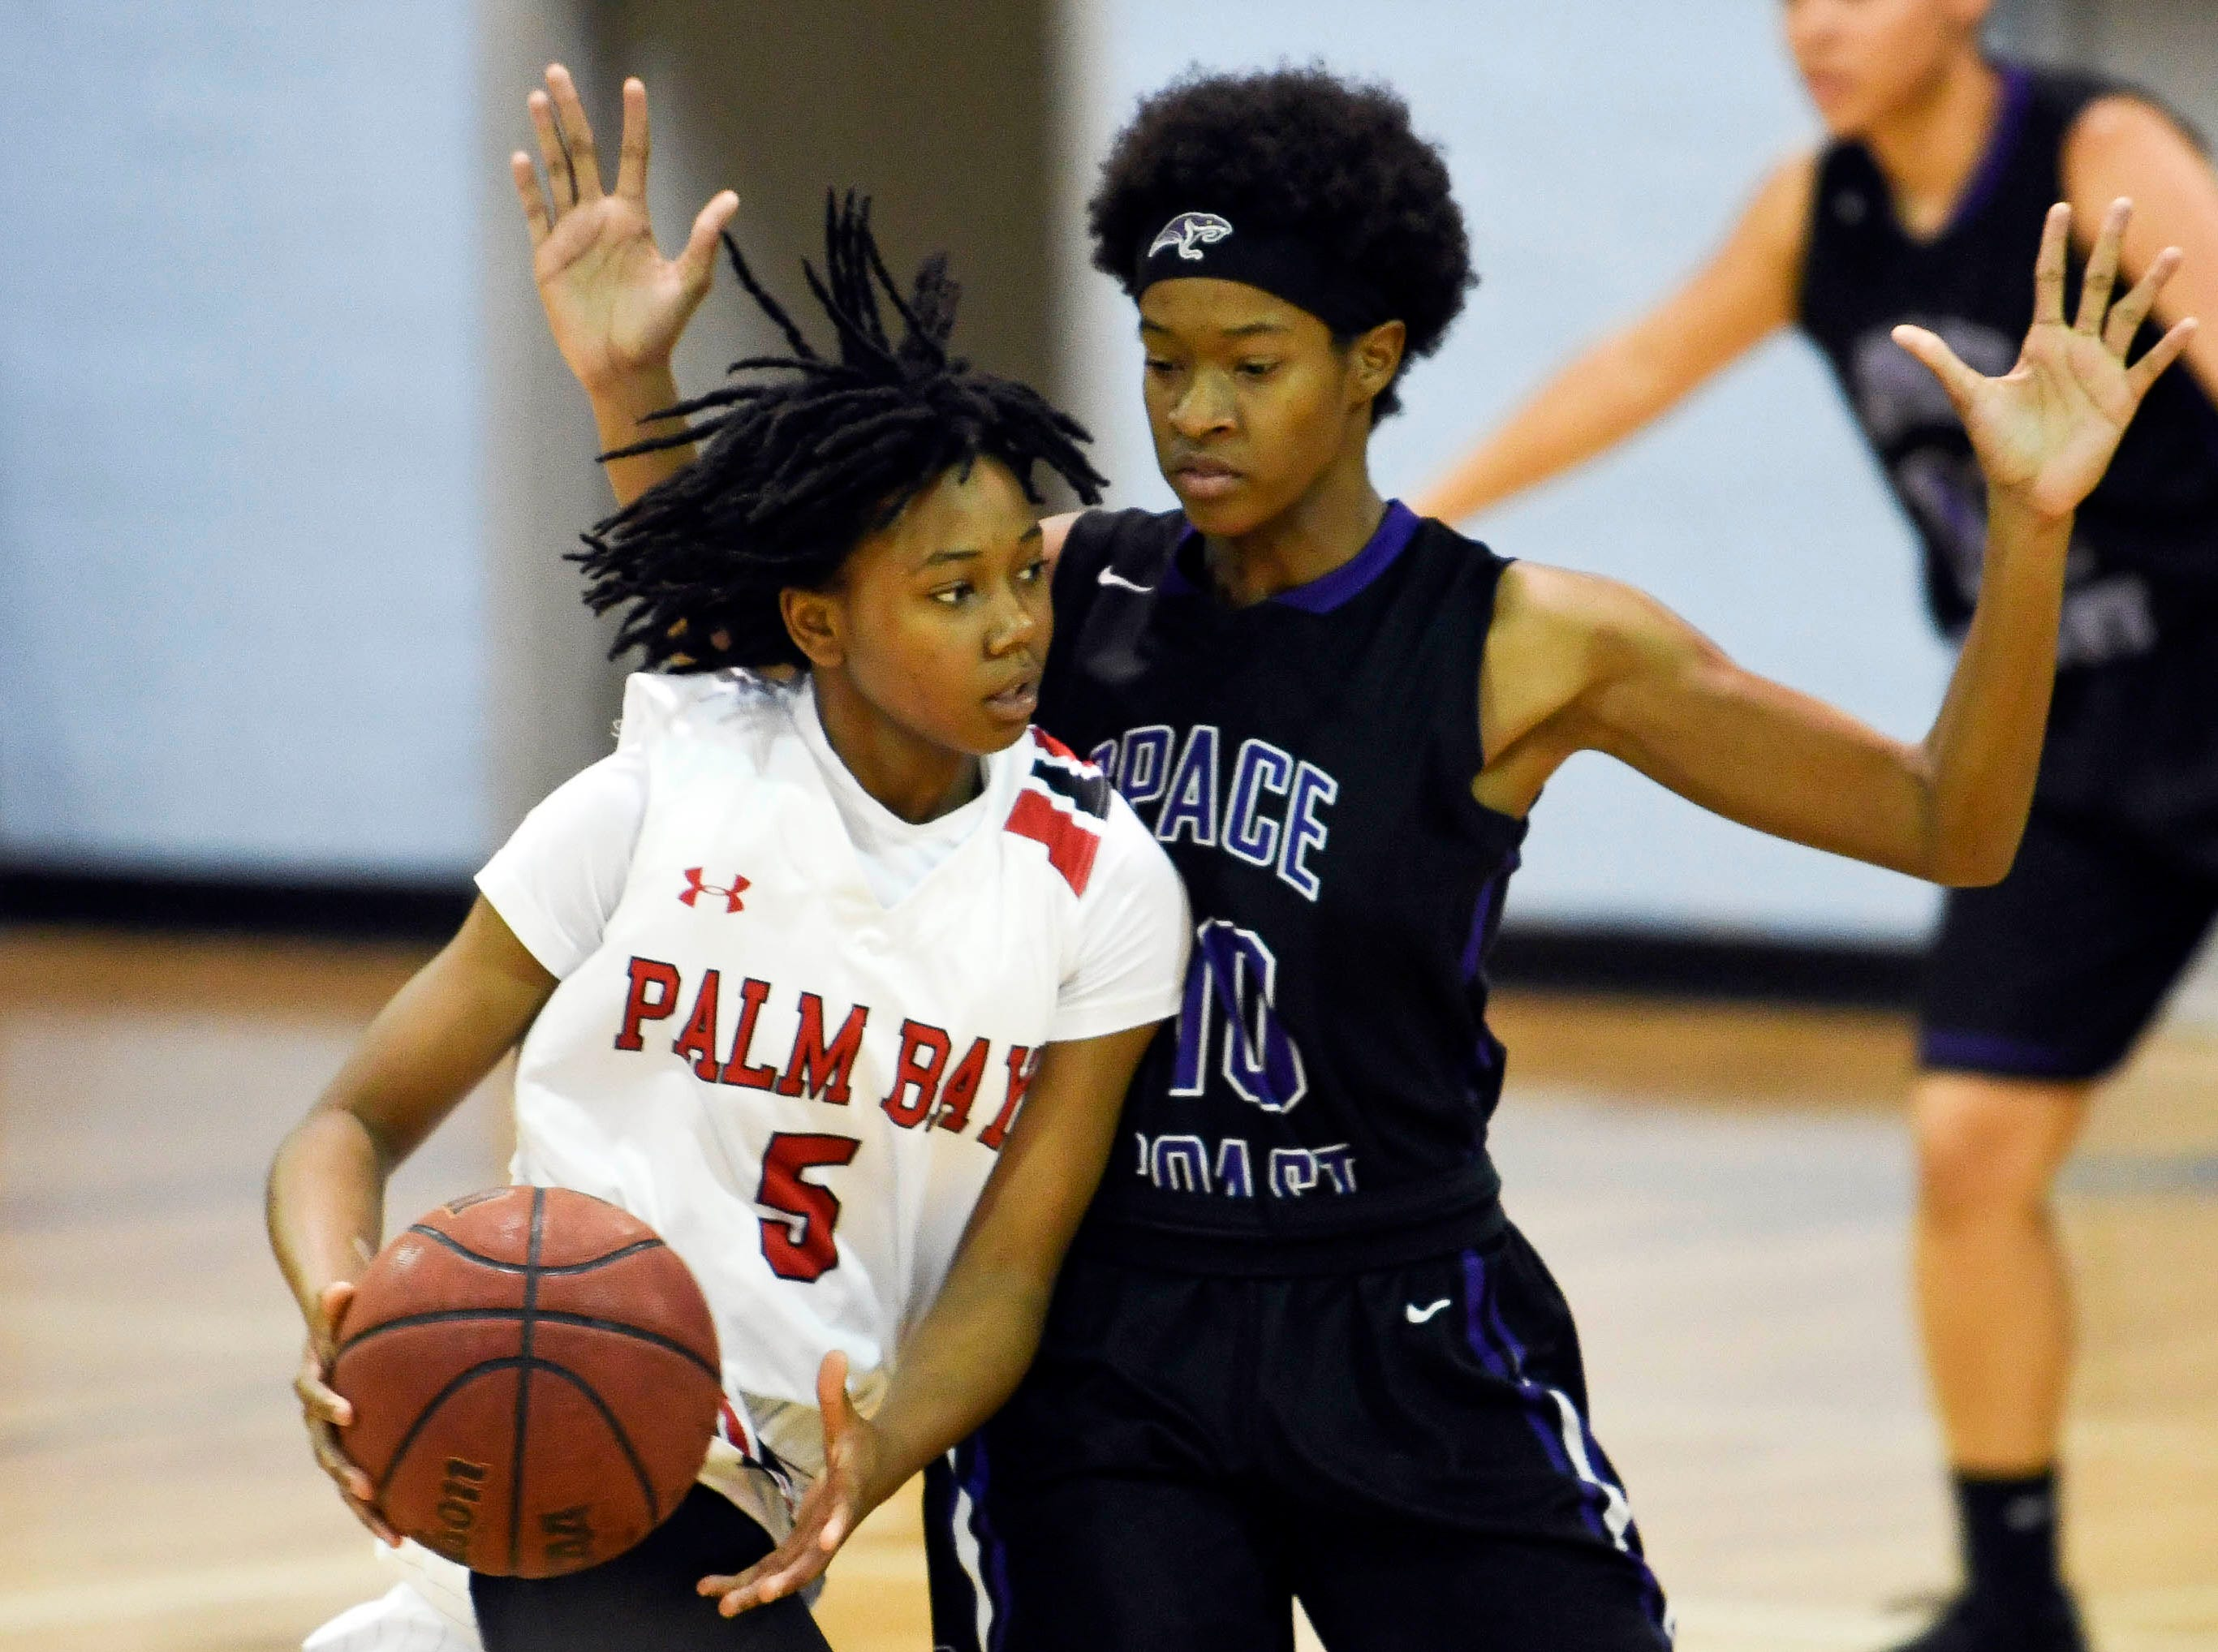 Amaya Bozeman of Palm Bay is guarded by Syniah Johnson of Space Coast during Thursday's District 14-6A basketball tournament semifinal at Rockledge High School.